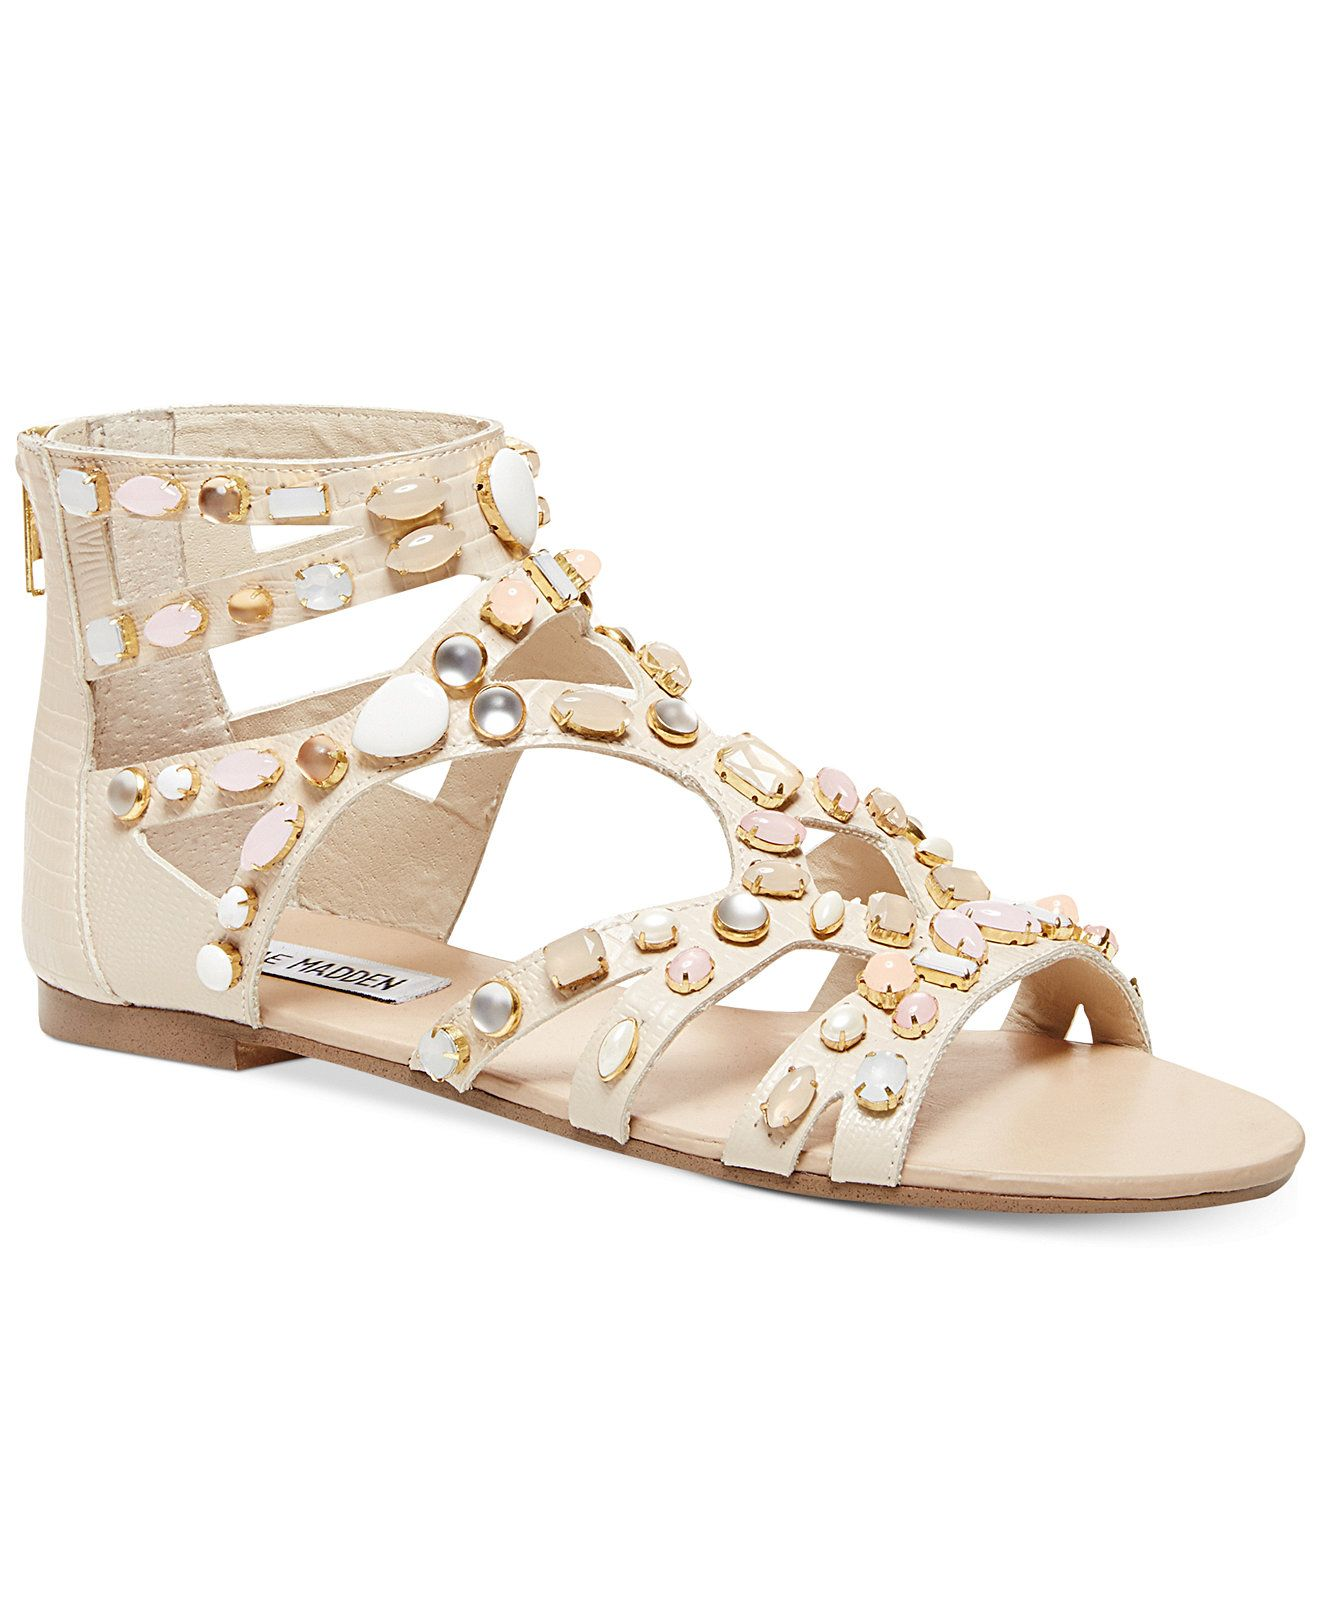 db5991973b3 Steve Madden Women s Culver-S Embellished Gladiator Flat Sandals (Only at  Macy s) - Embellished Sandals - Shoes - Macy s